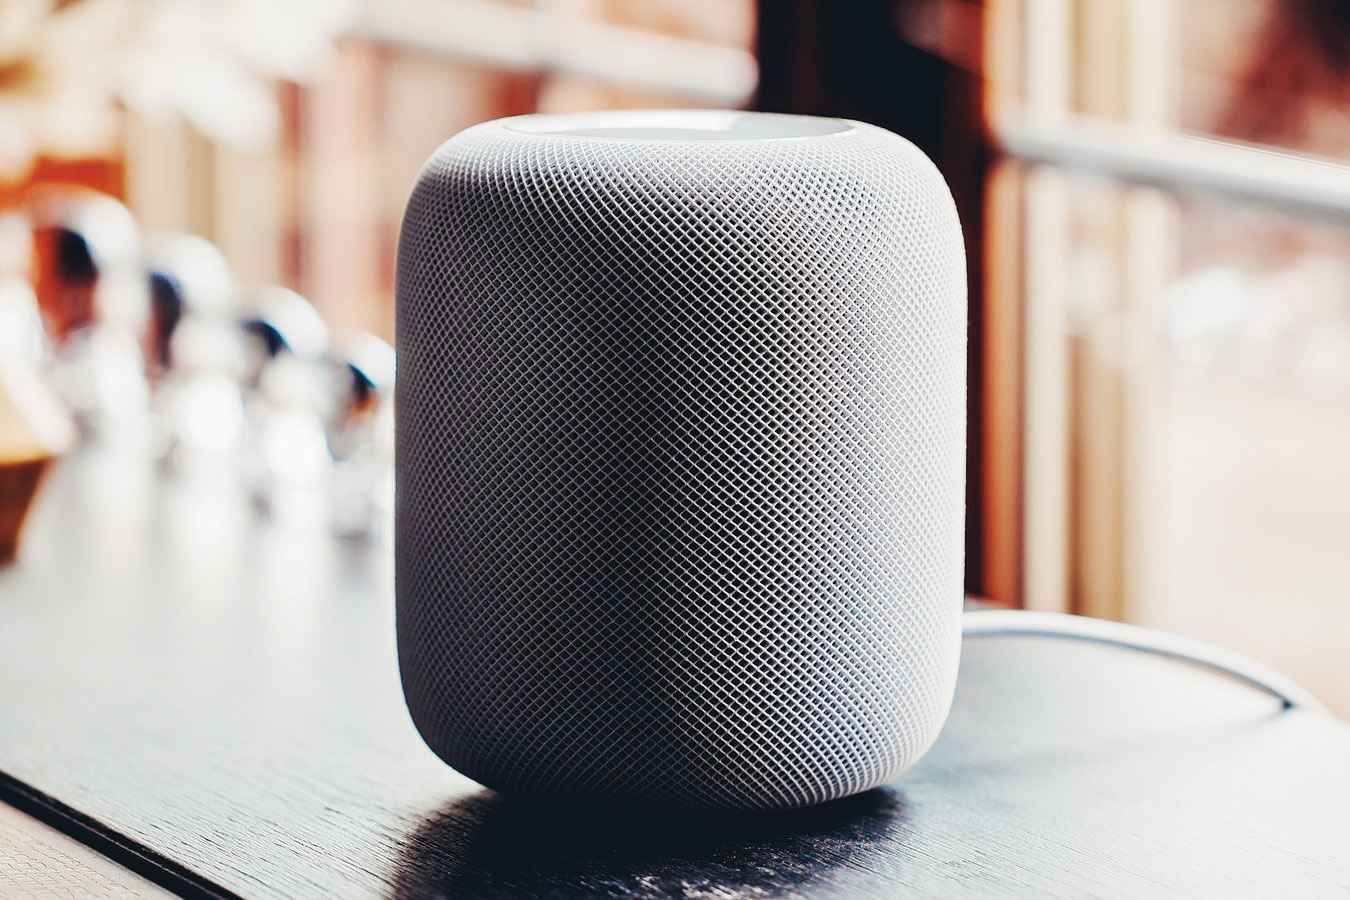 Apple was forbidden to play music simultaneously on your iPhone and HomePod